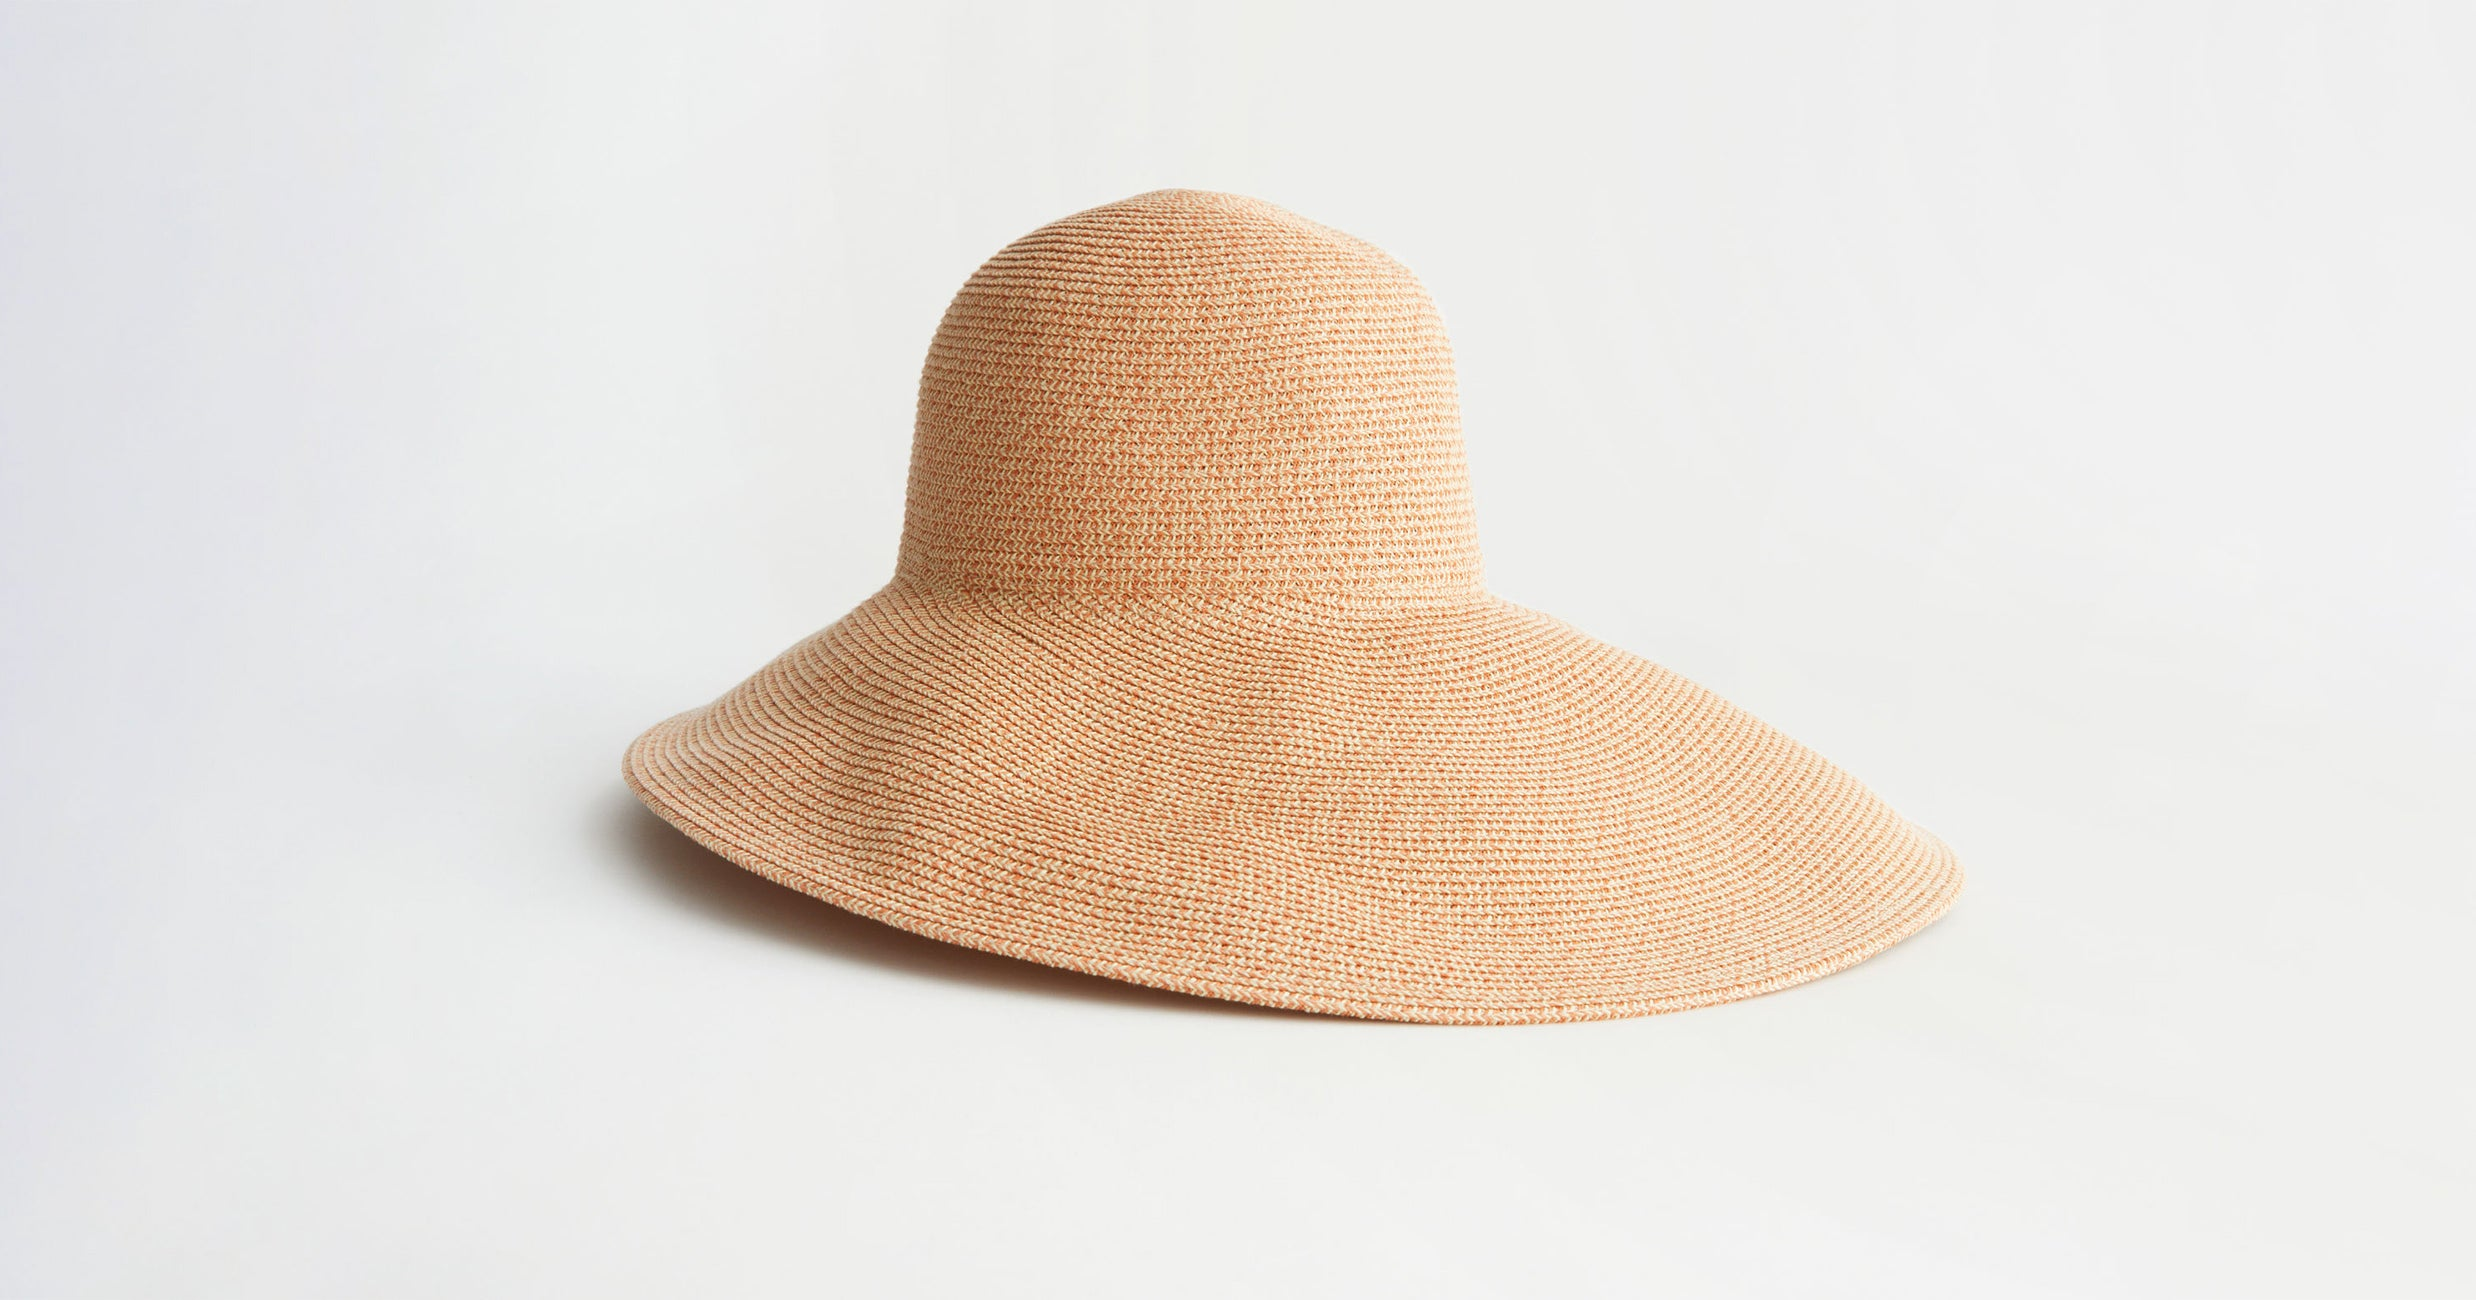 Beach Bums, Here Are The Best Sun Hats To Keep You Cool And Shady